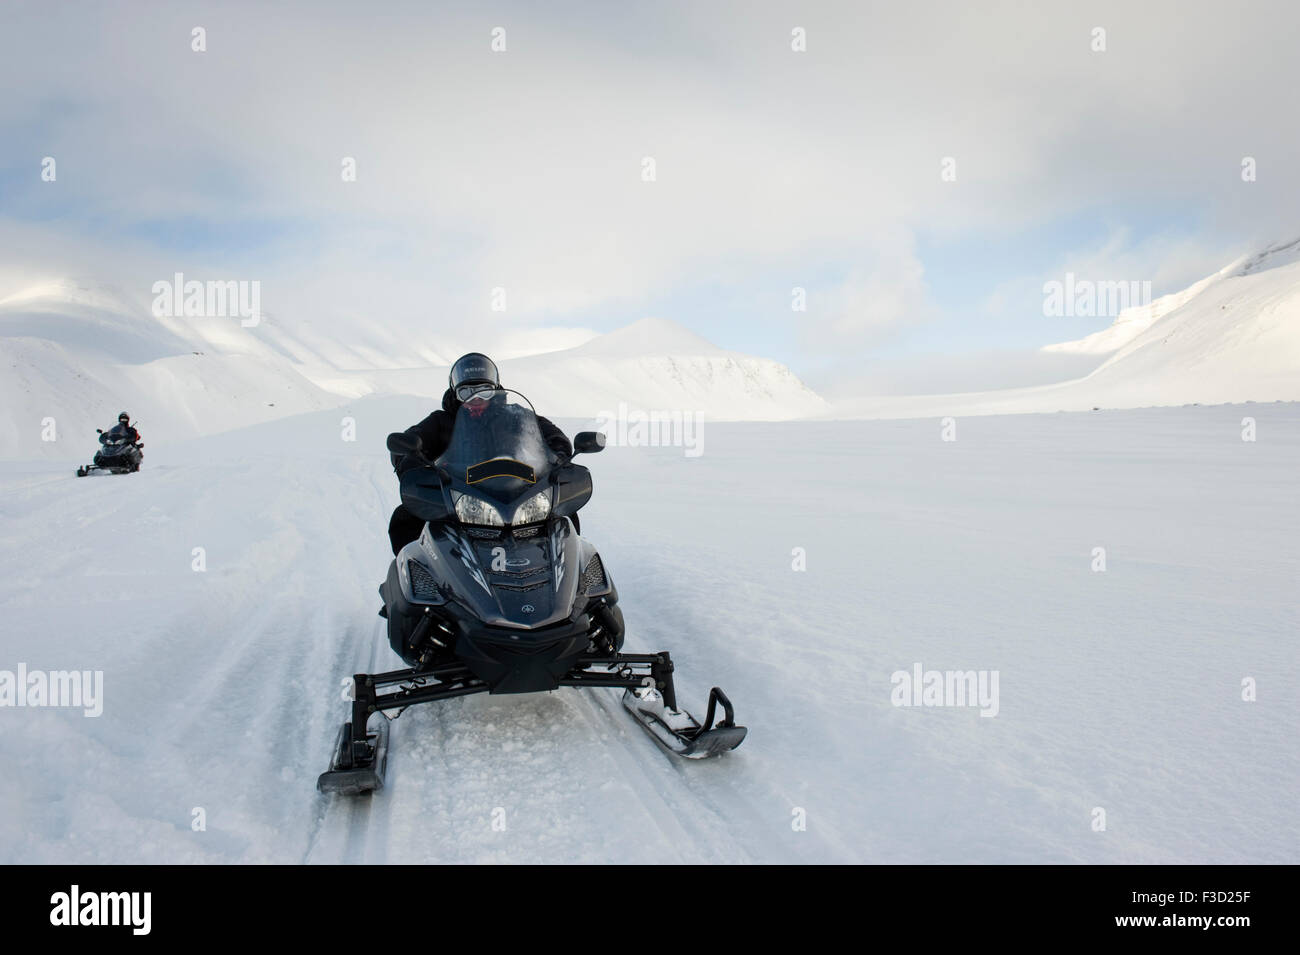 Man on snowmobile on it's way in a snowcovered landscape with glacier behind, Semmeldalen, Spitsbergen, Svalbard, - Stock Image